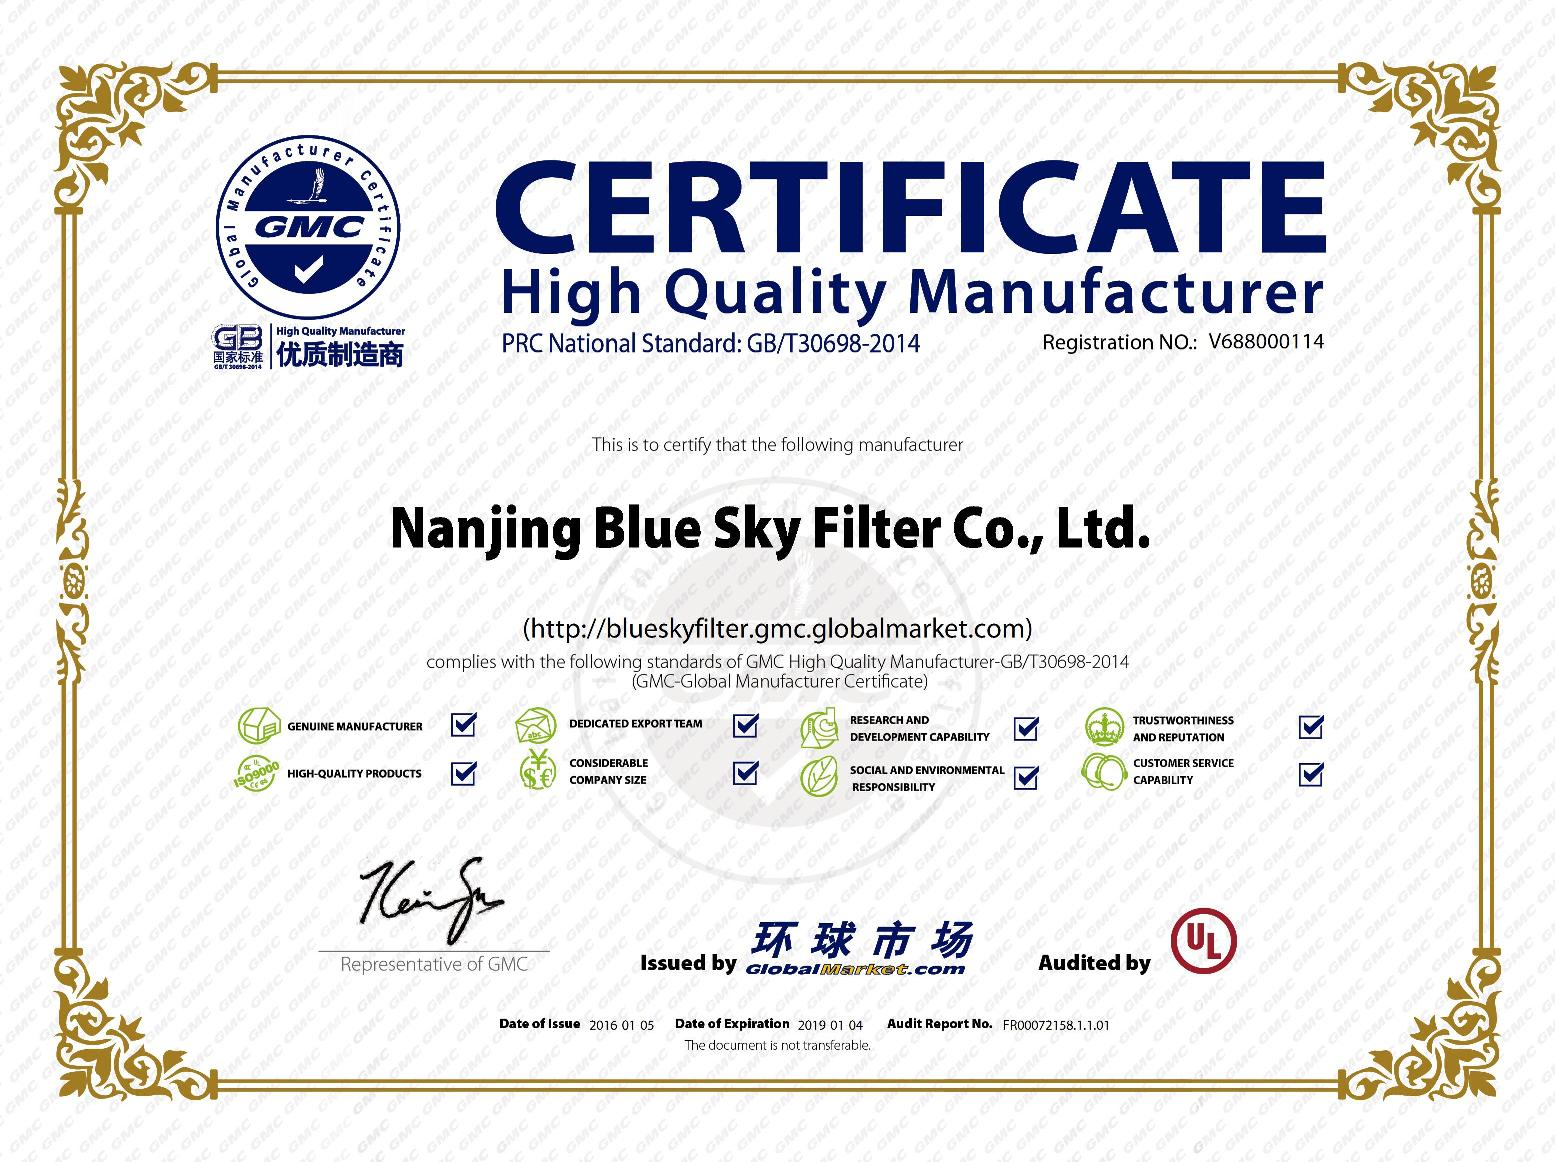 Certificates of High Quality Manufacturer